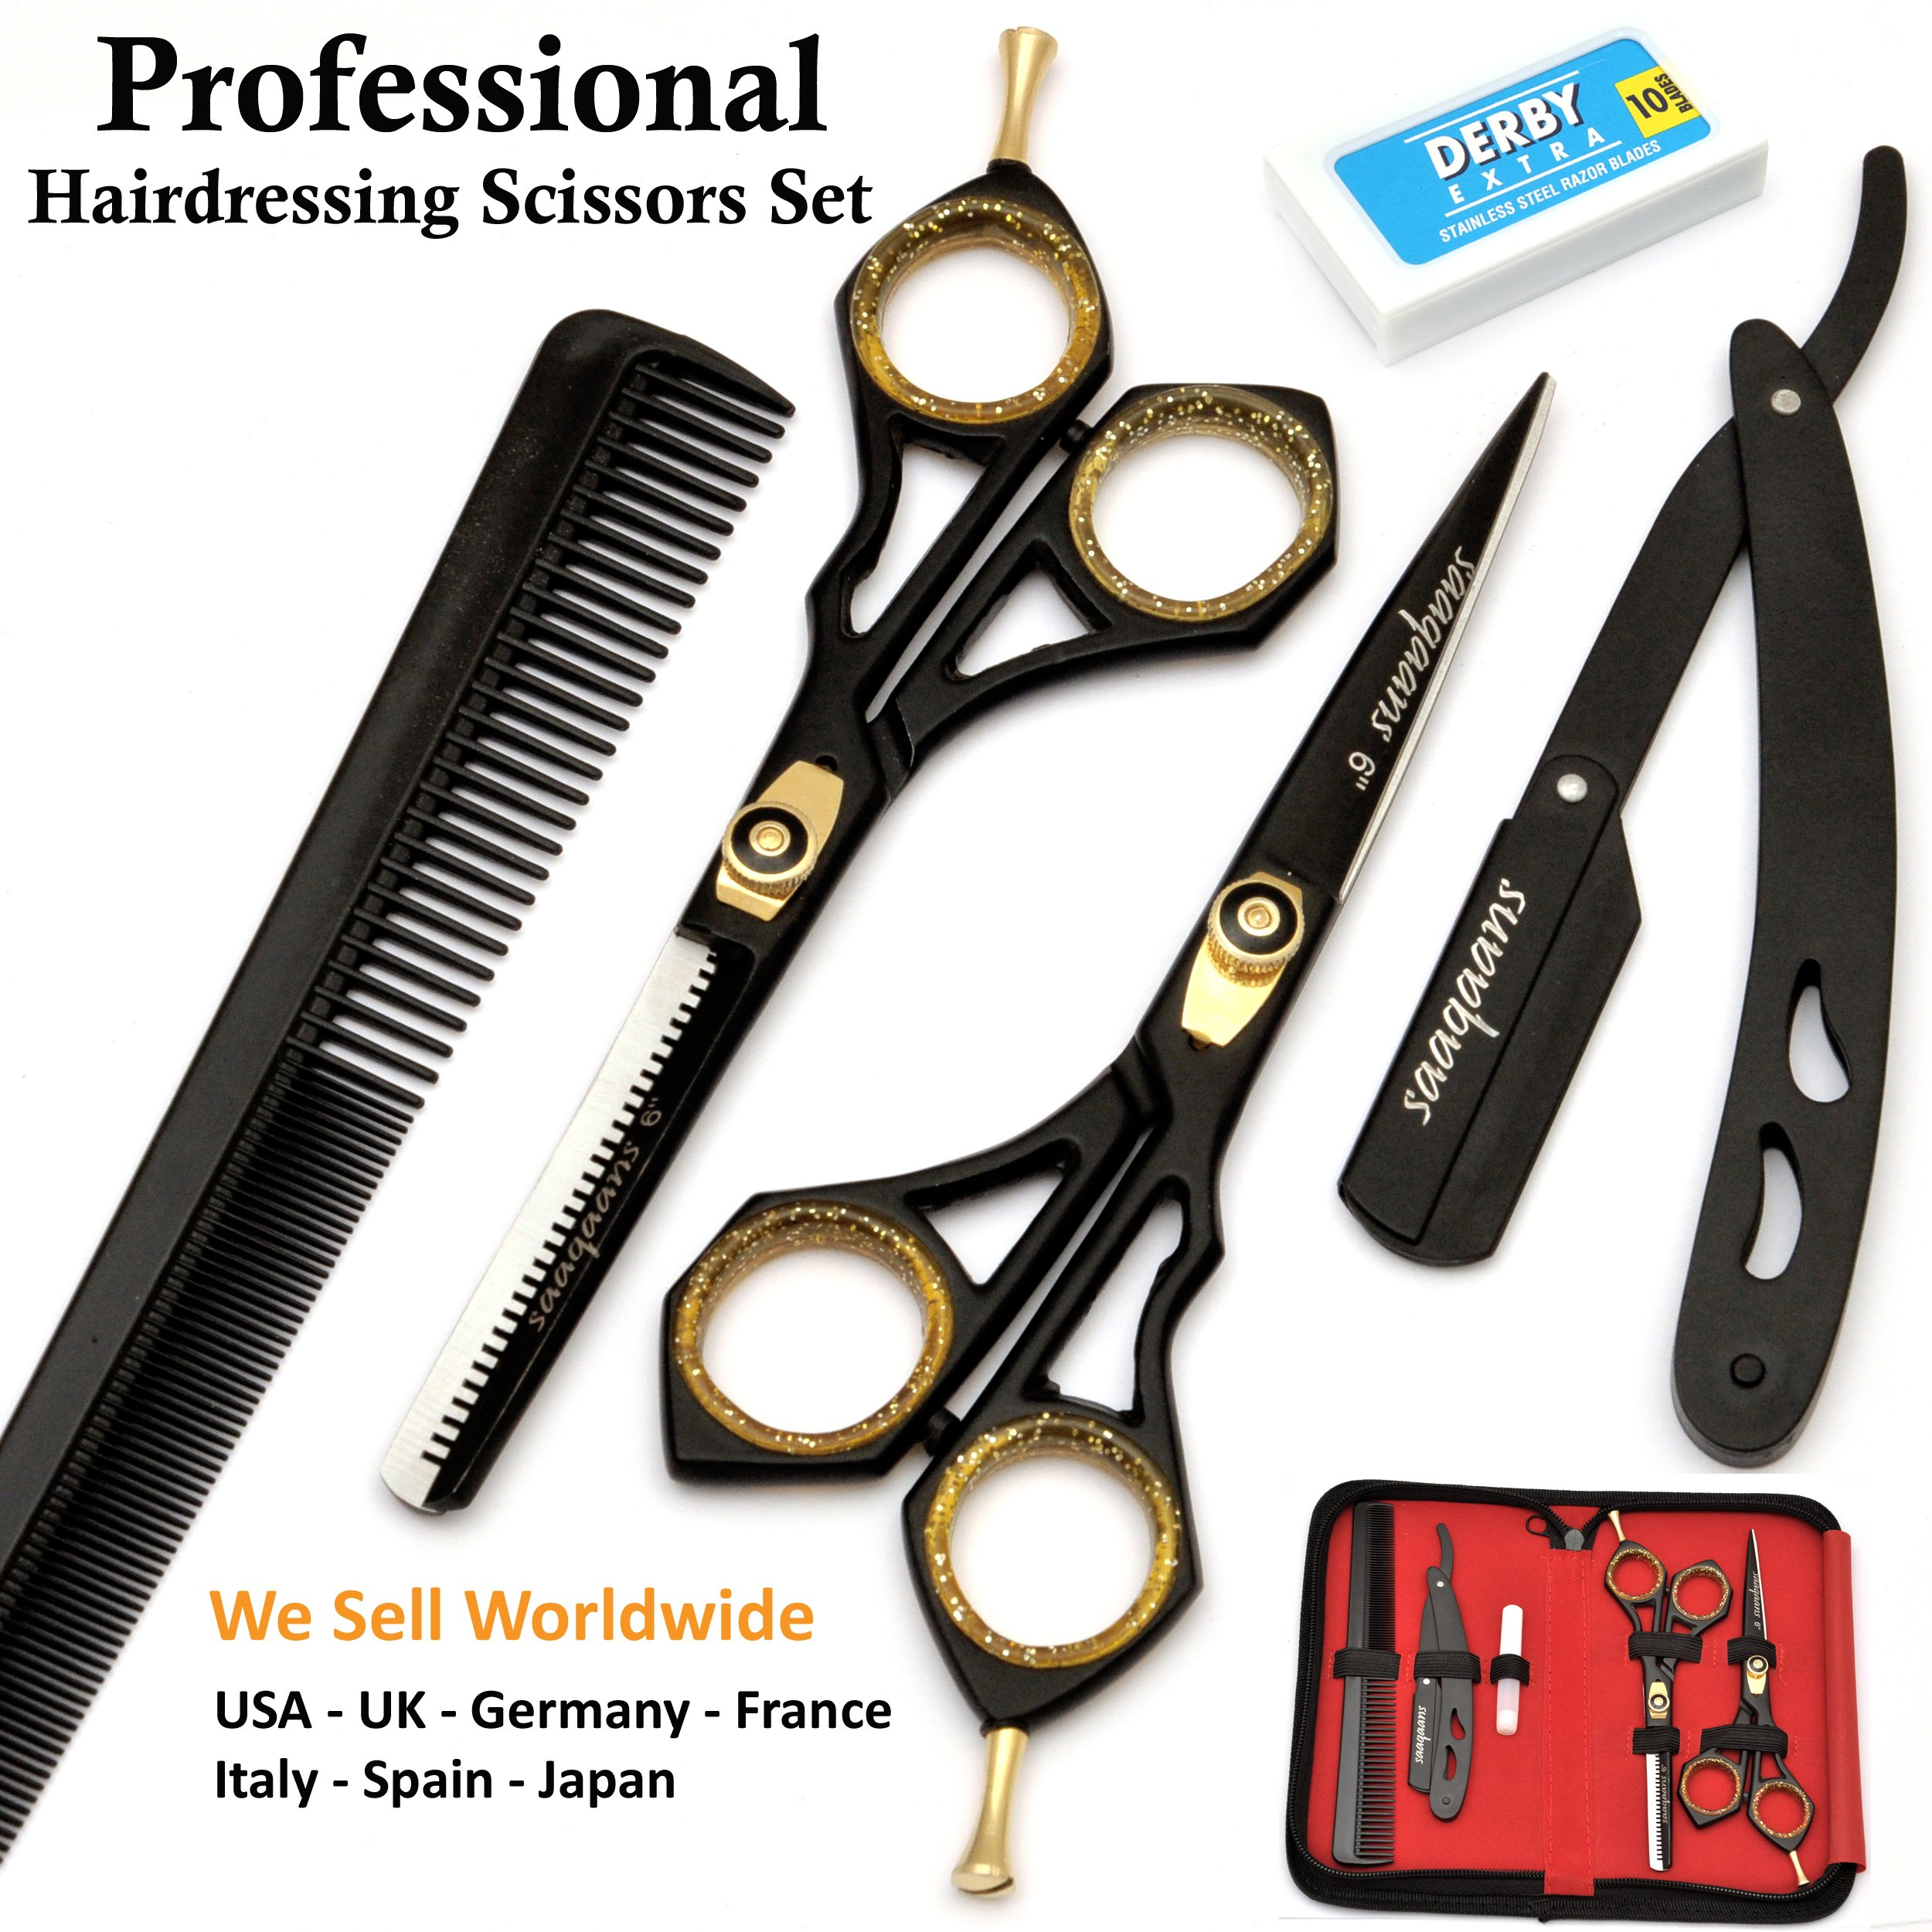 Saaqaans SQKIT Professional Hairdresser Scissors Set - Package includes Barber Scissor, Thinning Shear, Straight Razor, 10 x Double Edge Blades and Hair Comb in Stylish Black Scissors Case by Saaqaans